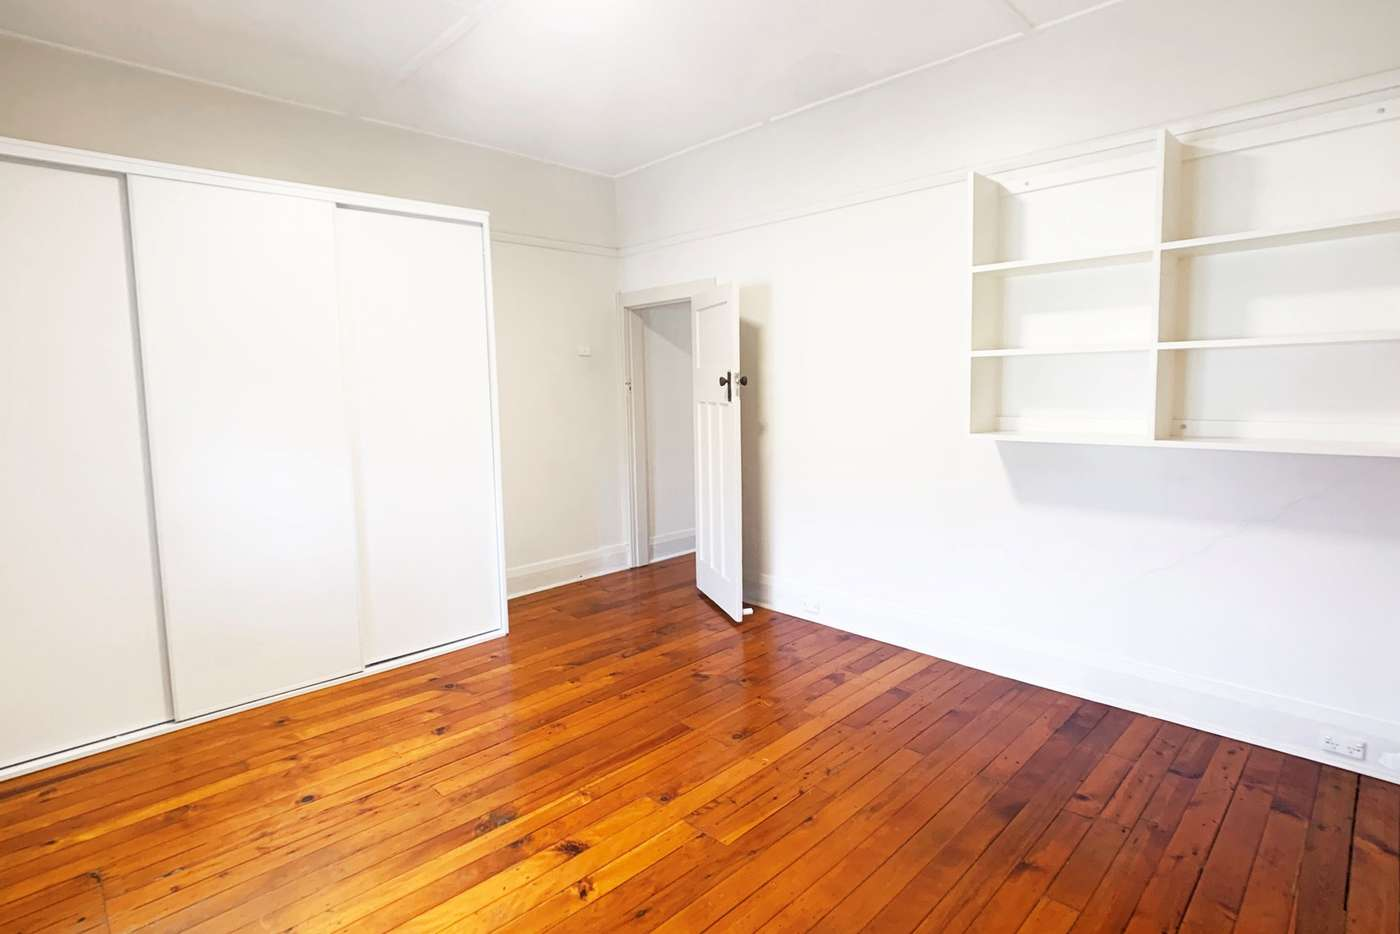 Seventh view of Homely terrace listing, 42 Burnie Street, Clovelly NSW 2031